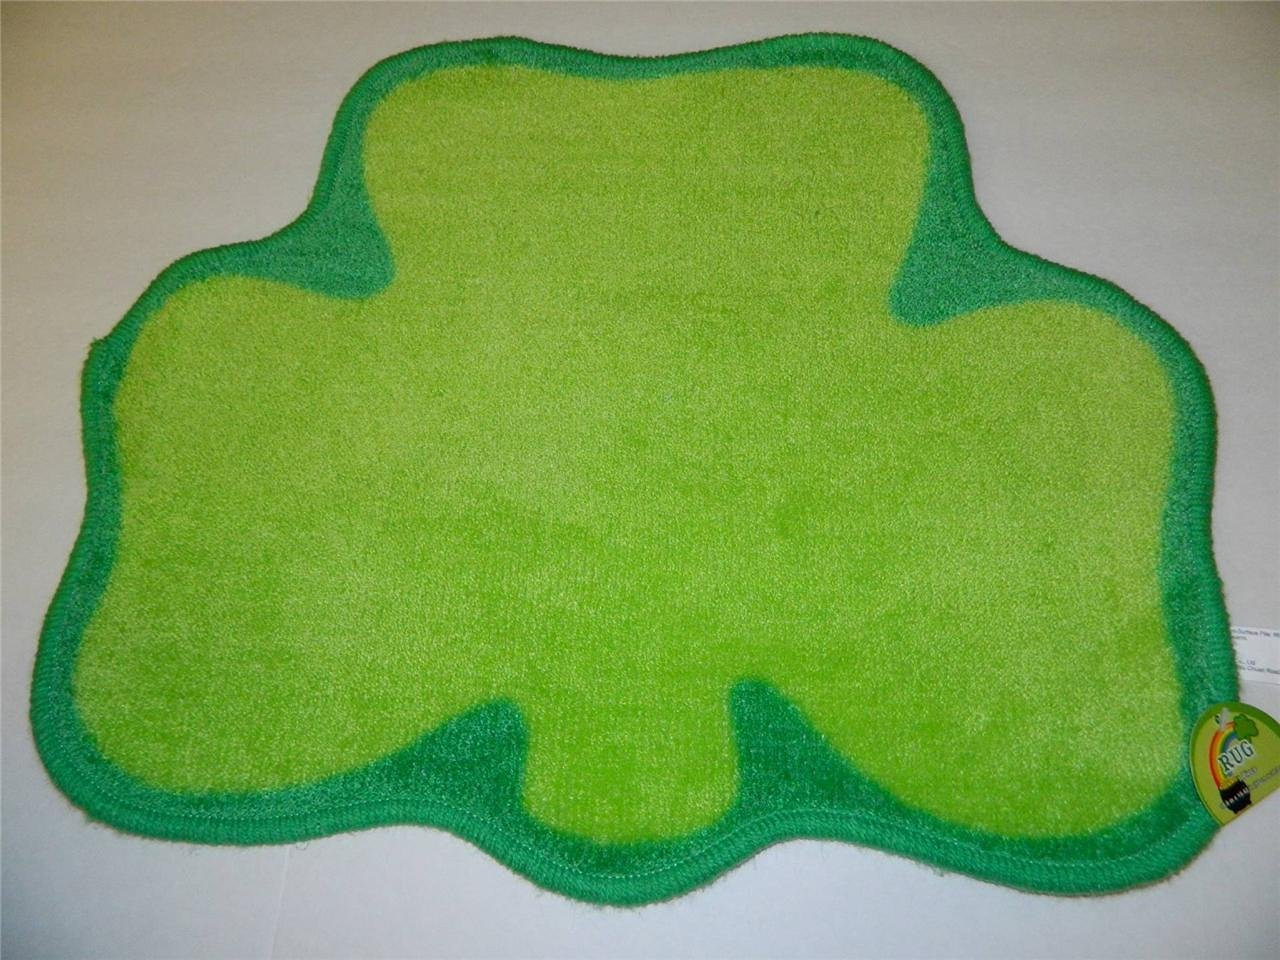 Get Quotations Bath Rugs Rug Round St Patricks Day Green Shamrock Mat Door Bedroom Kitchen